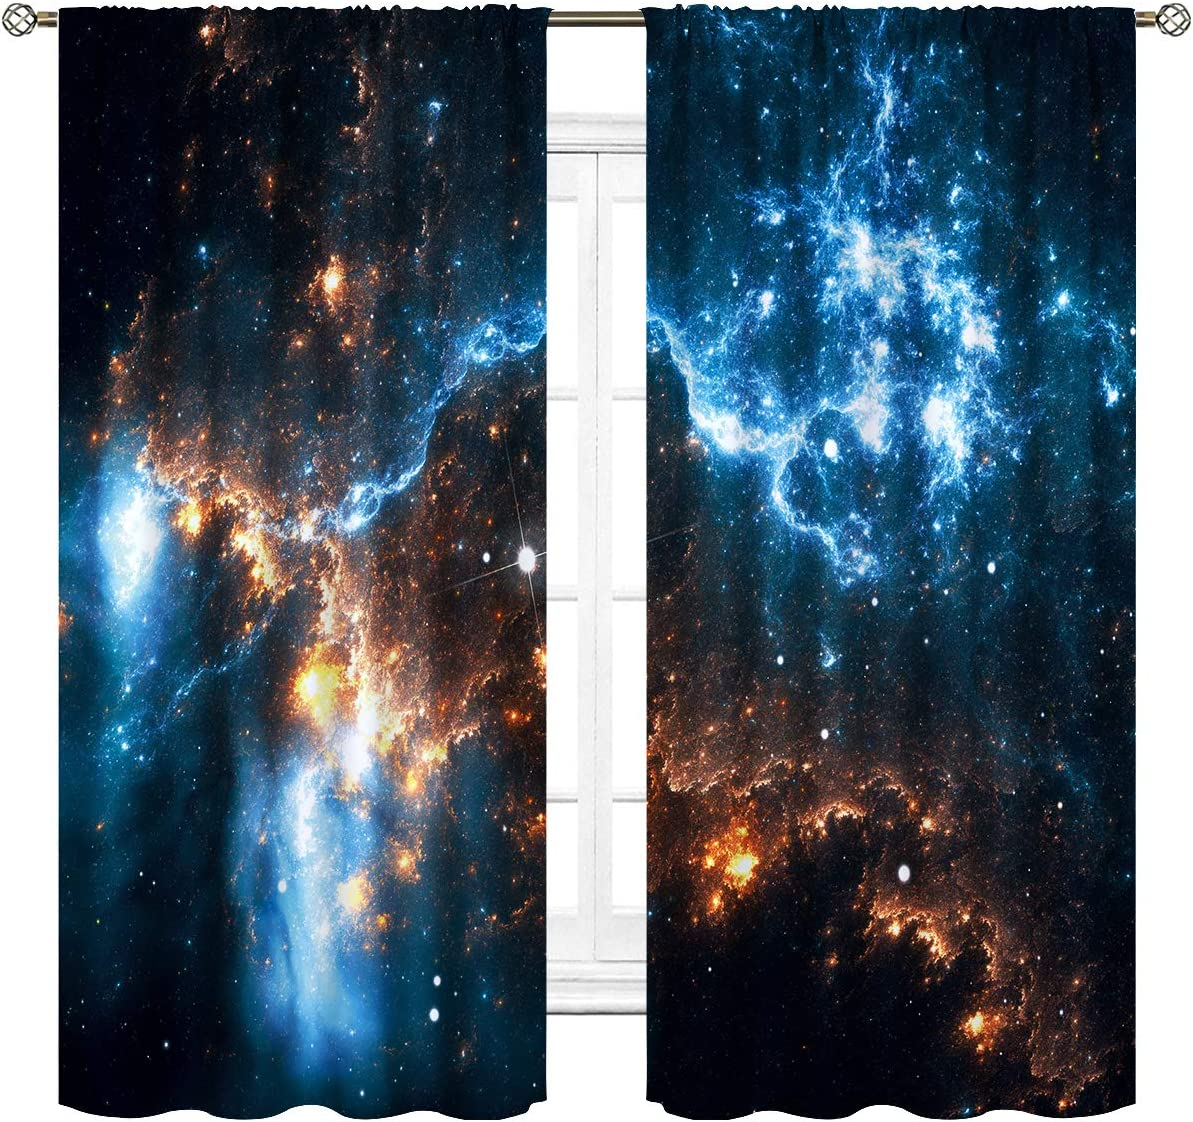 Cinblue Galaxy Sky Curtains Rod Pocket Nebula Planet Night Starry Star Universe Outer Space Fantasy Art Printed Living Room Bedroom Window Drapes Treatment Fabric 2 Panels 42 W x 63 L Inch